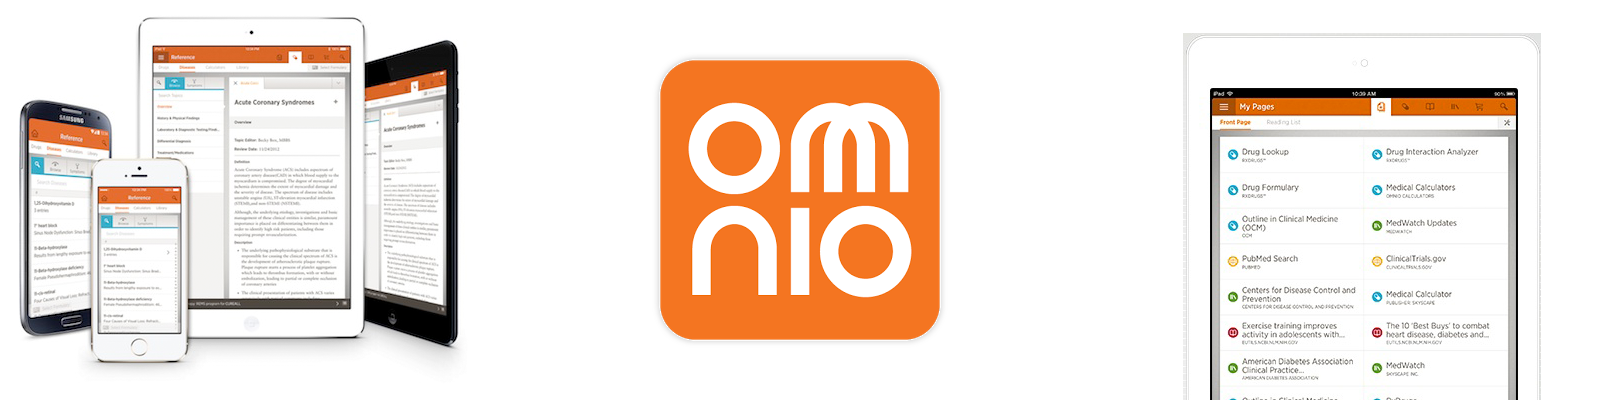 application like omnio cost